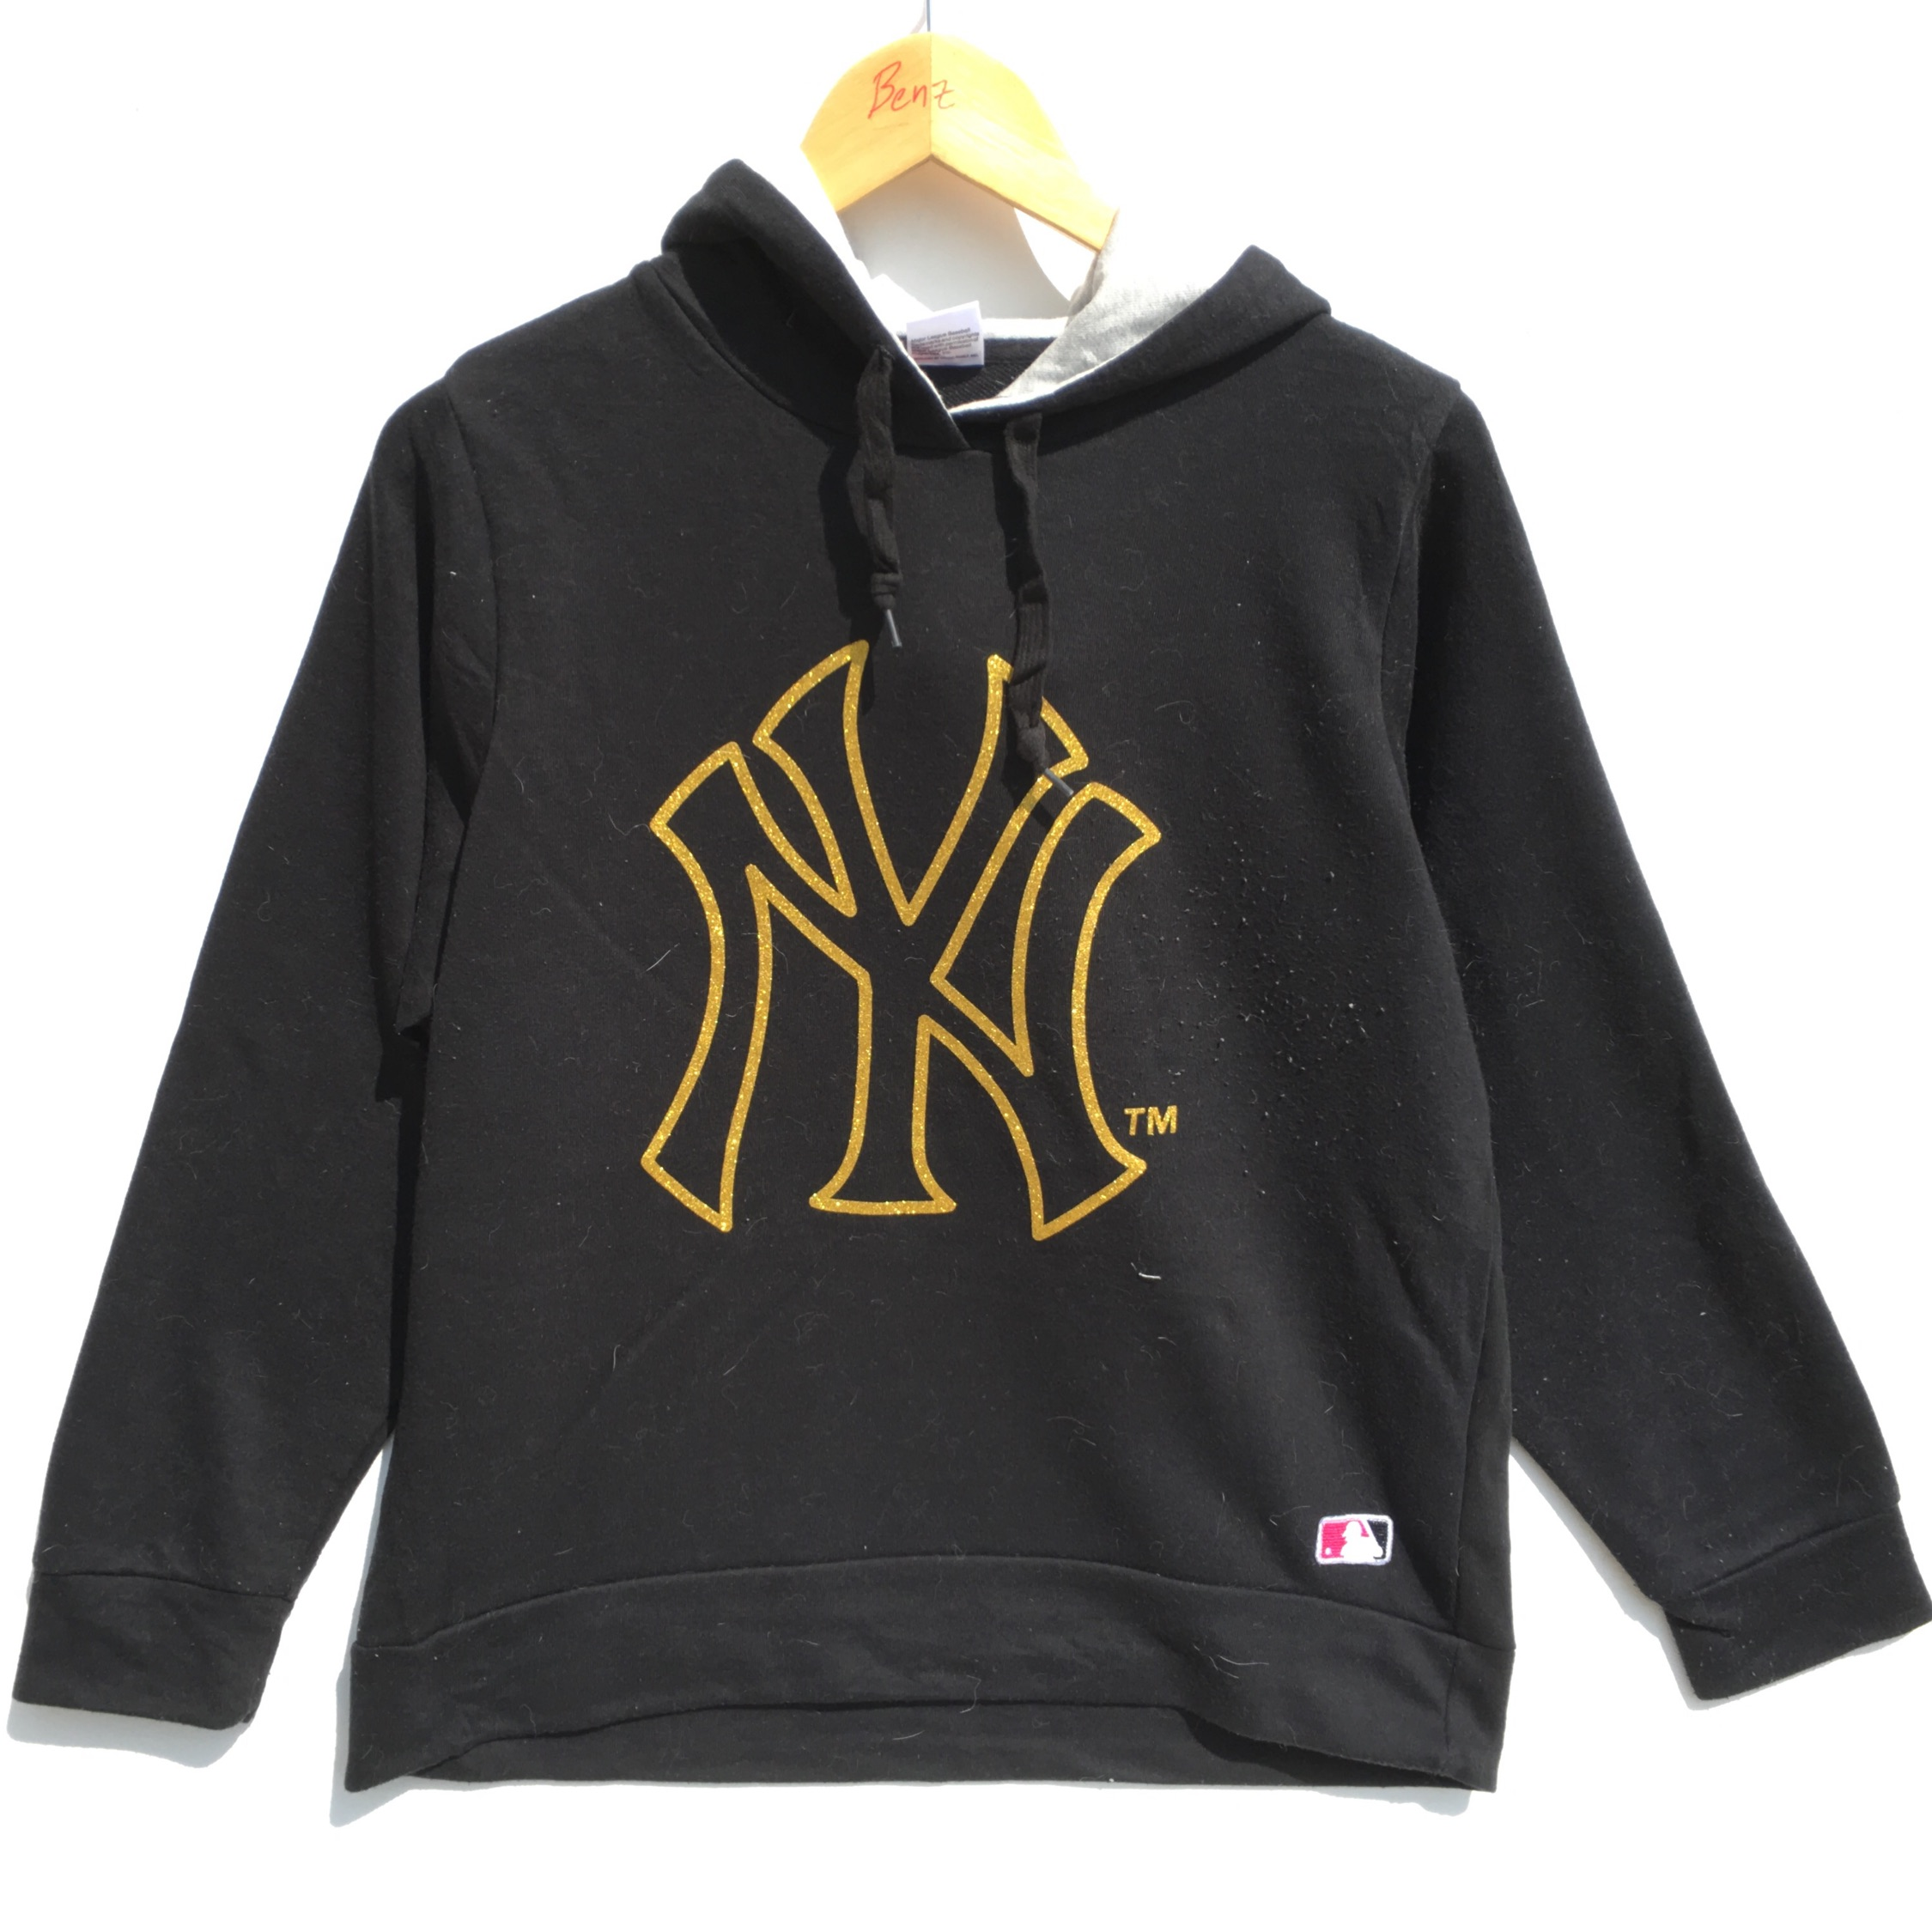 competitive price 42137 70e86 new york yankees hoodie